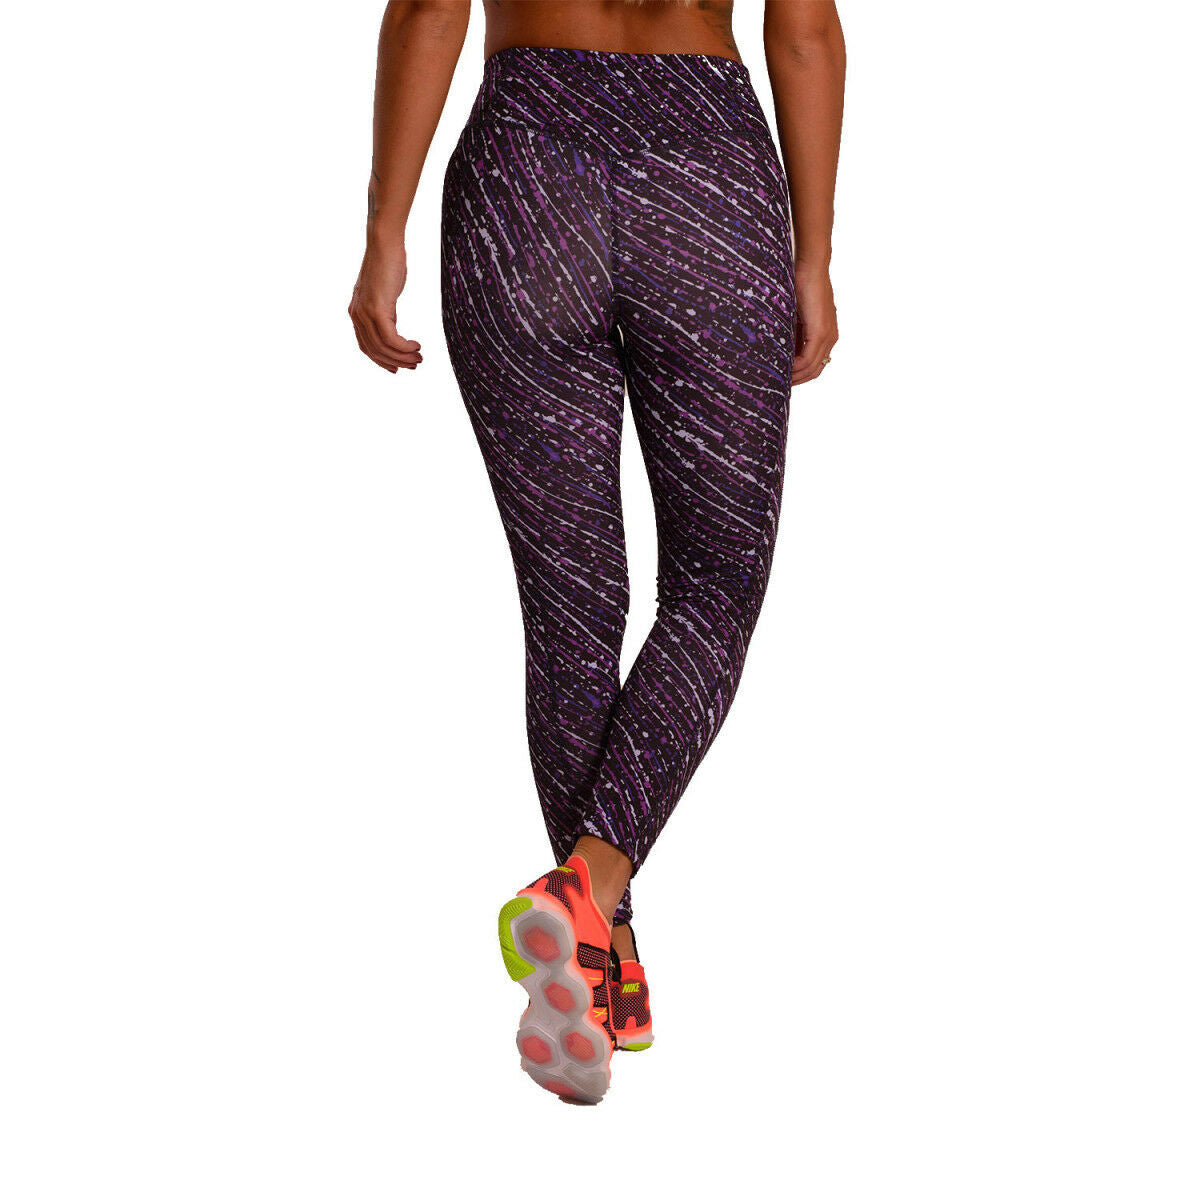 Women's Nike Power Essential Tight Leggings  833729-011  Size: X/Small